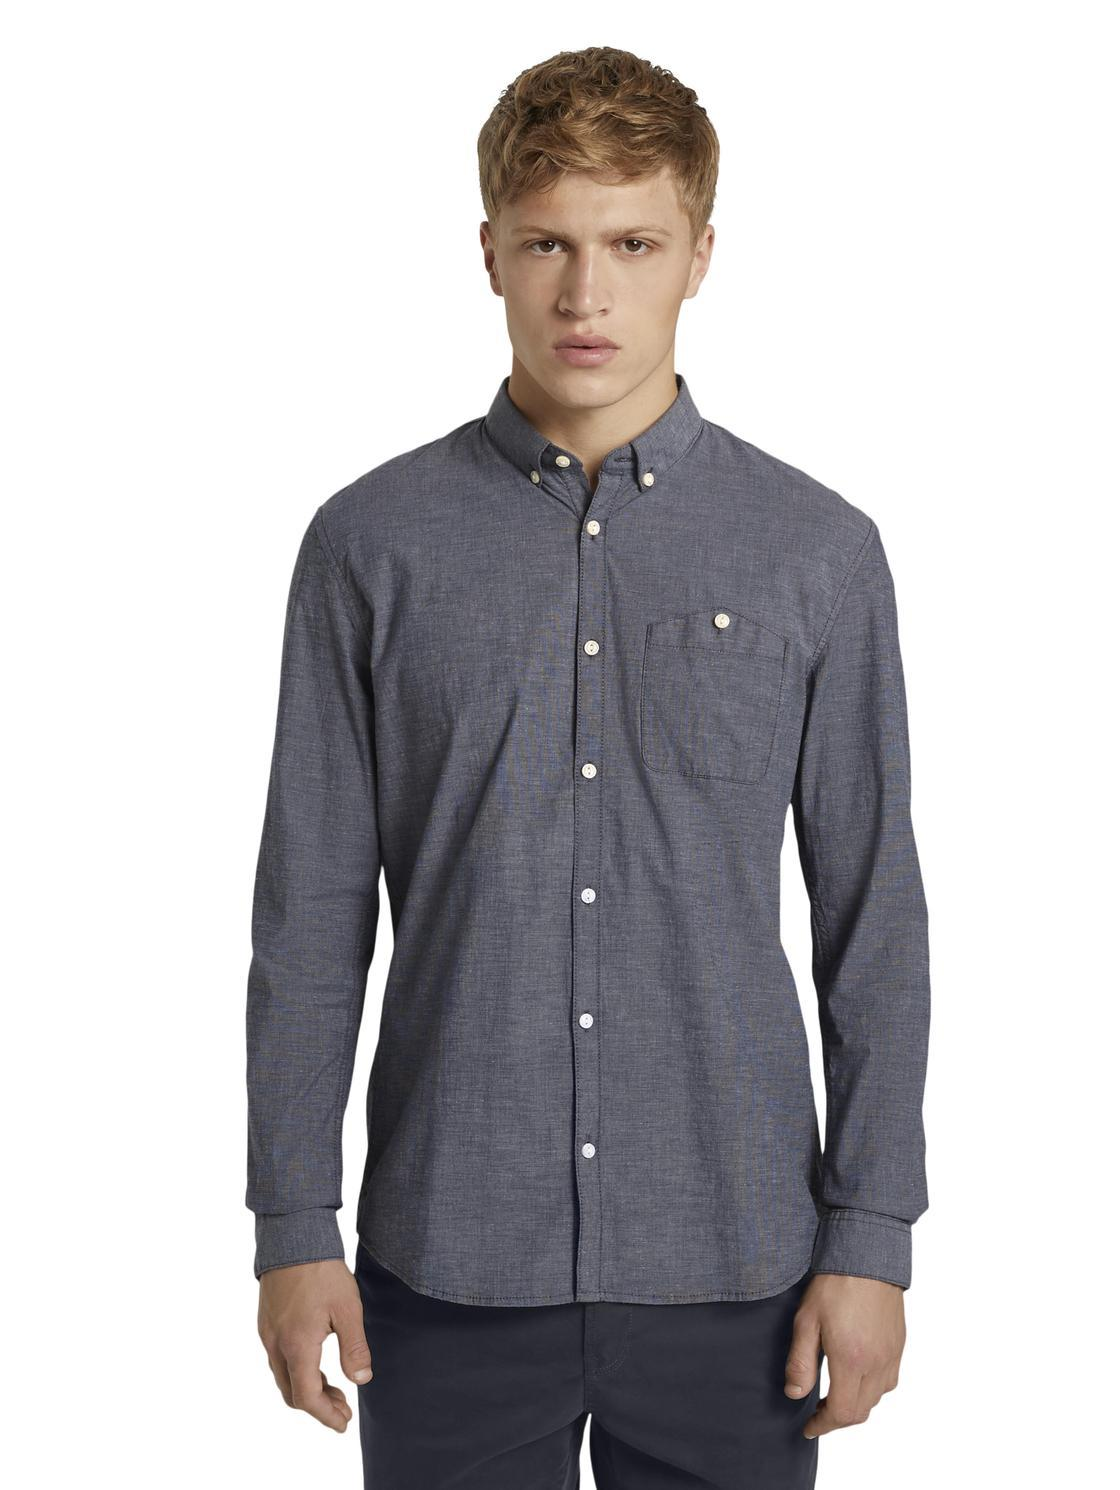 Tom Tailor 1020189 men's shirt navy